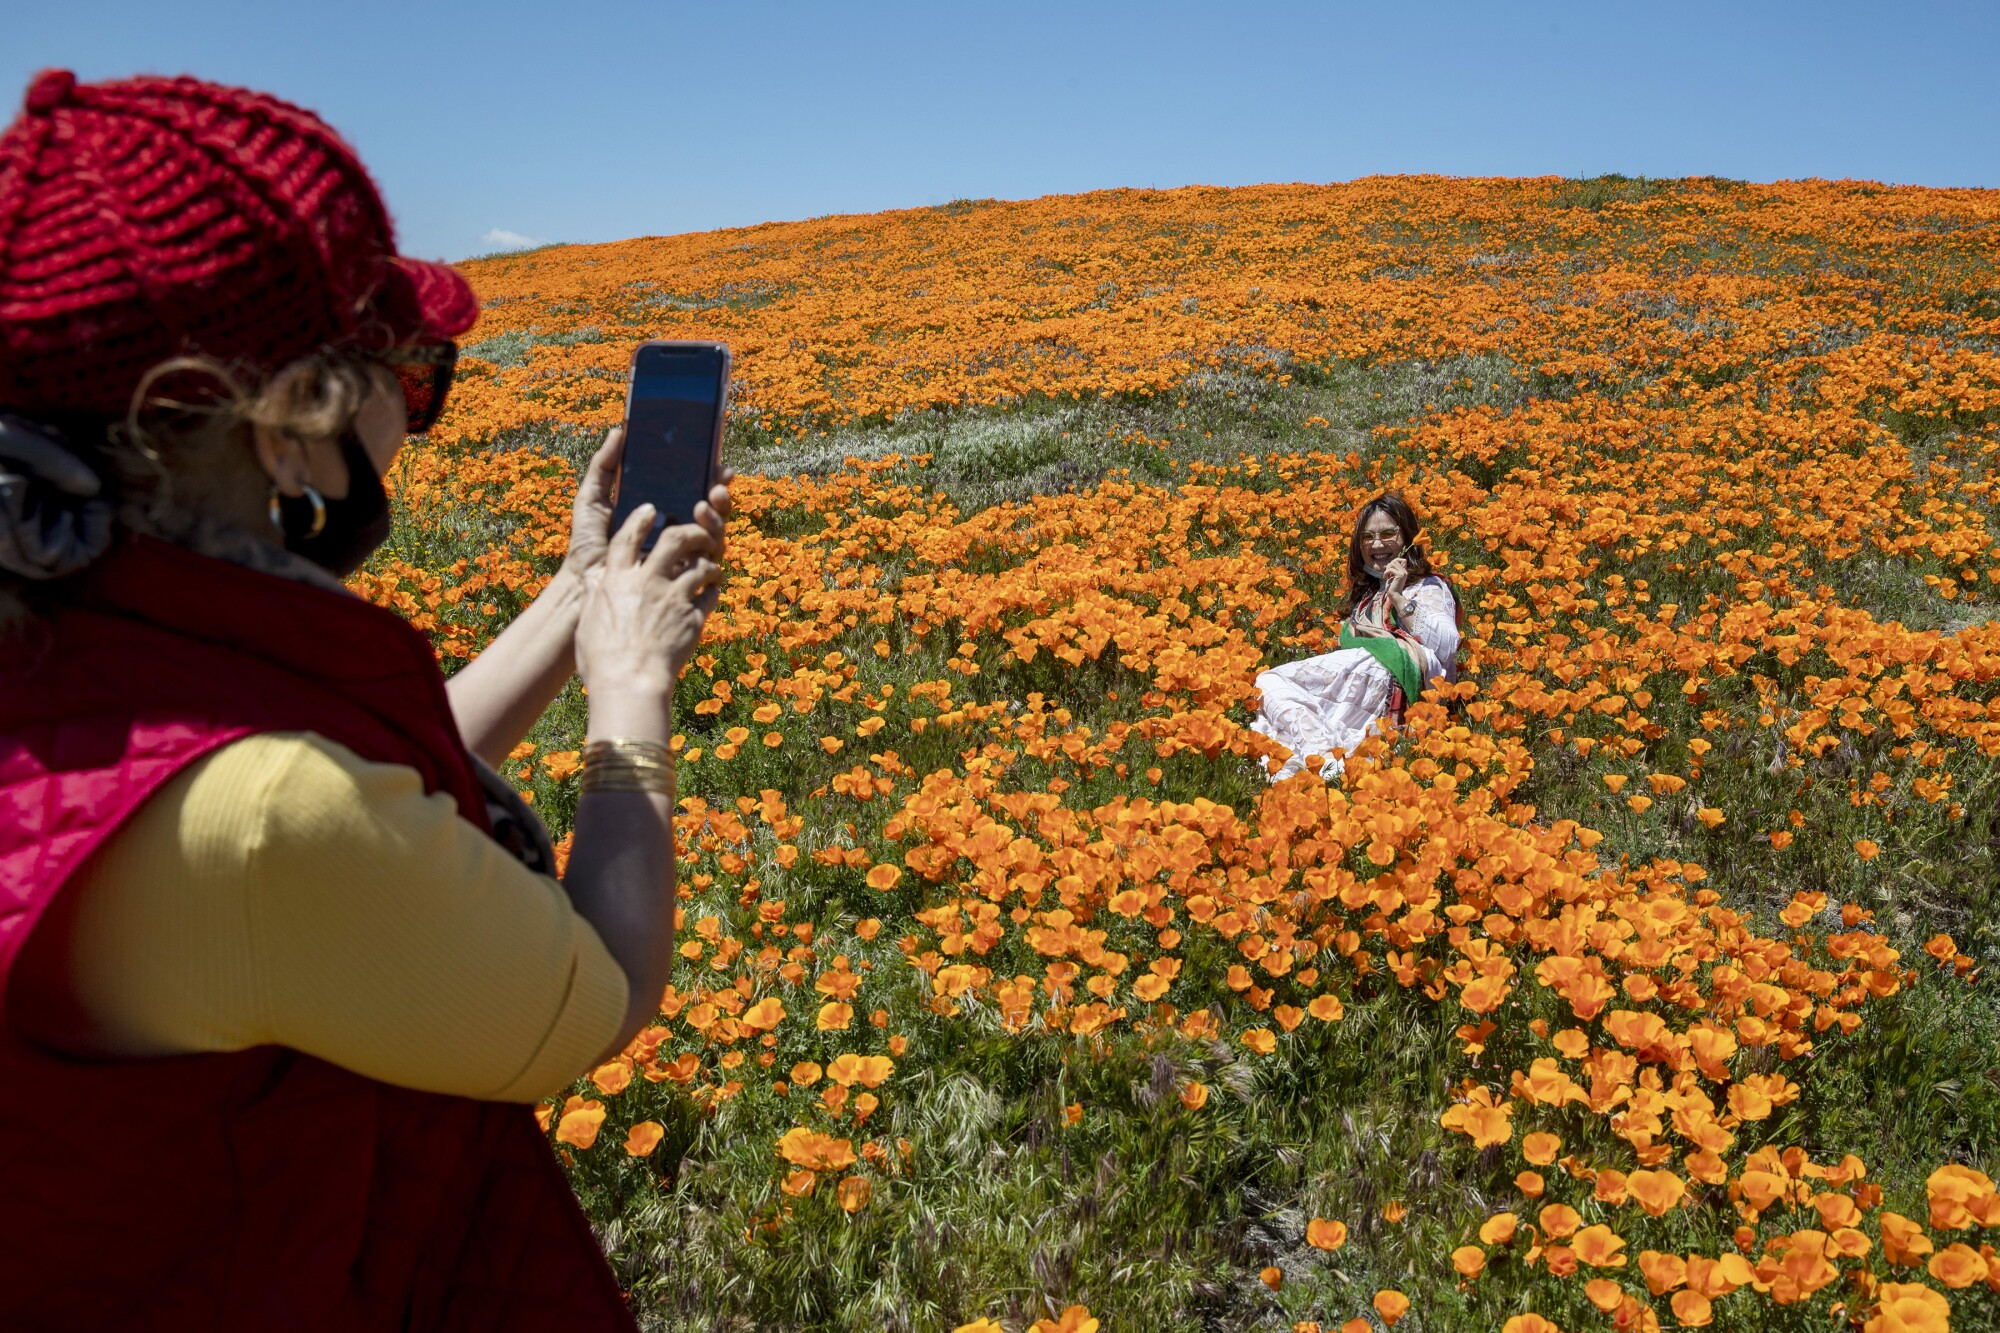 Shana Zhao, left, photographs her sister, Vivi Zhao, among blooming California poppies in a field in Lancaster.